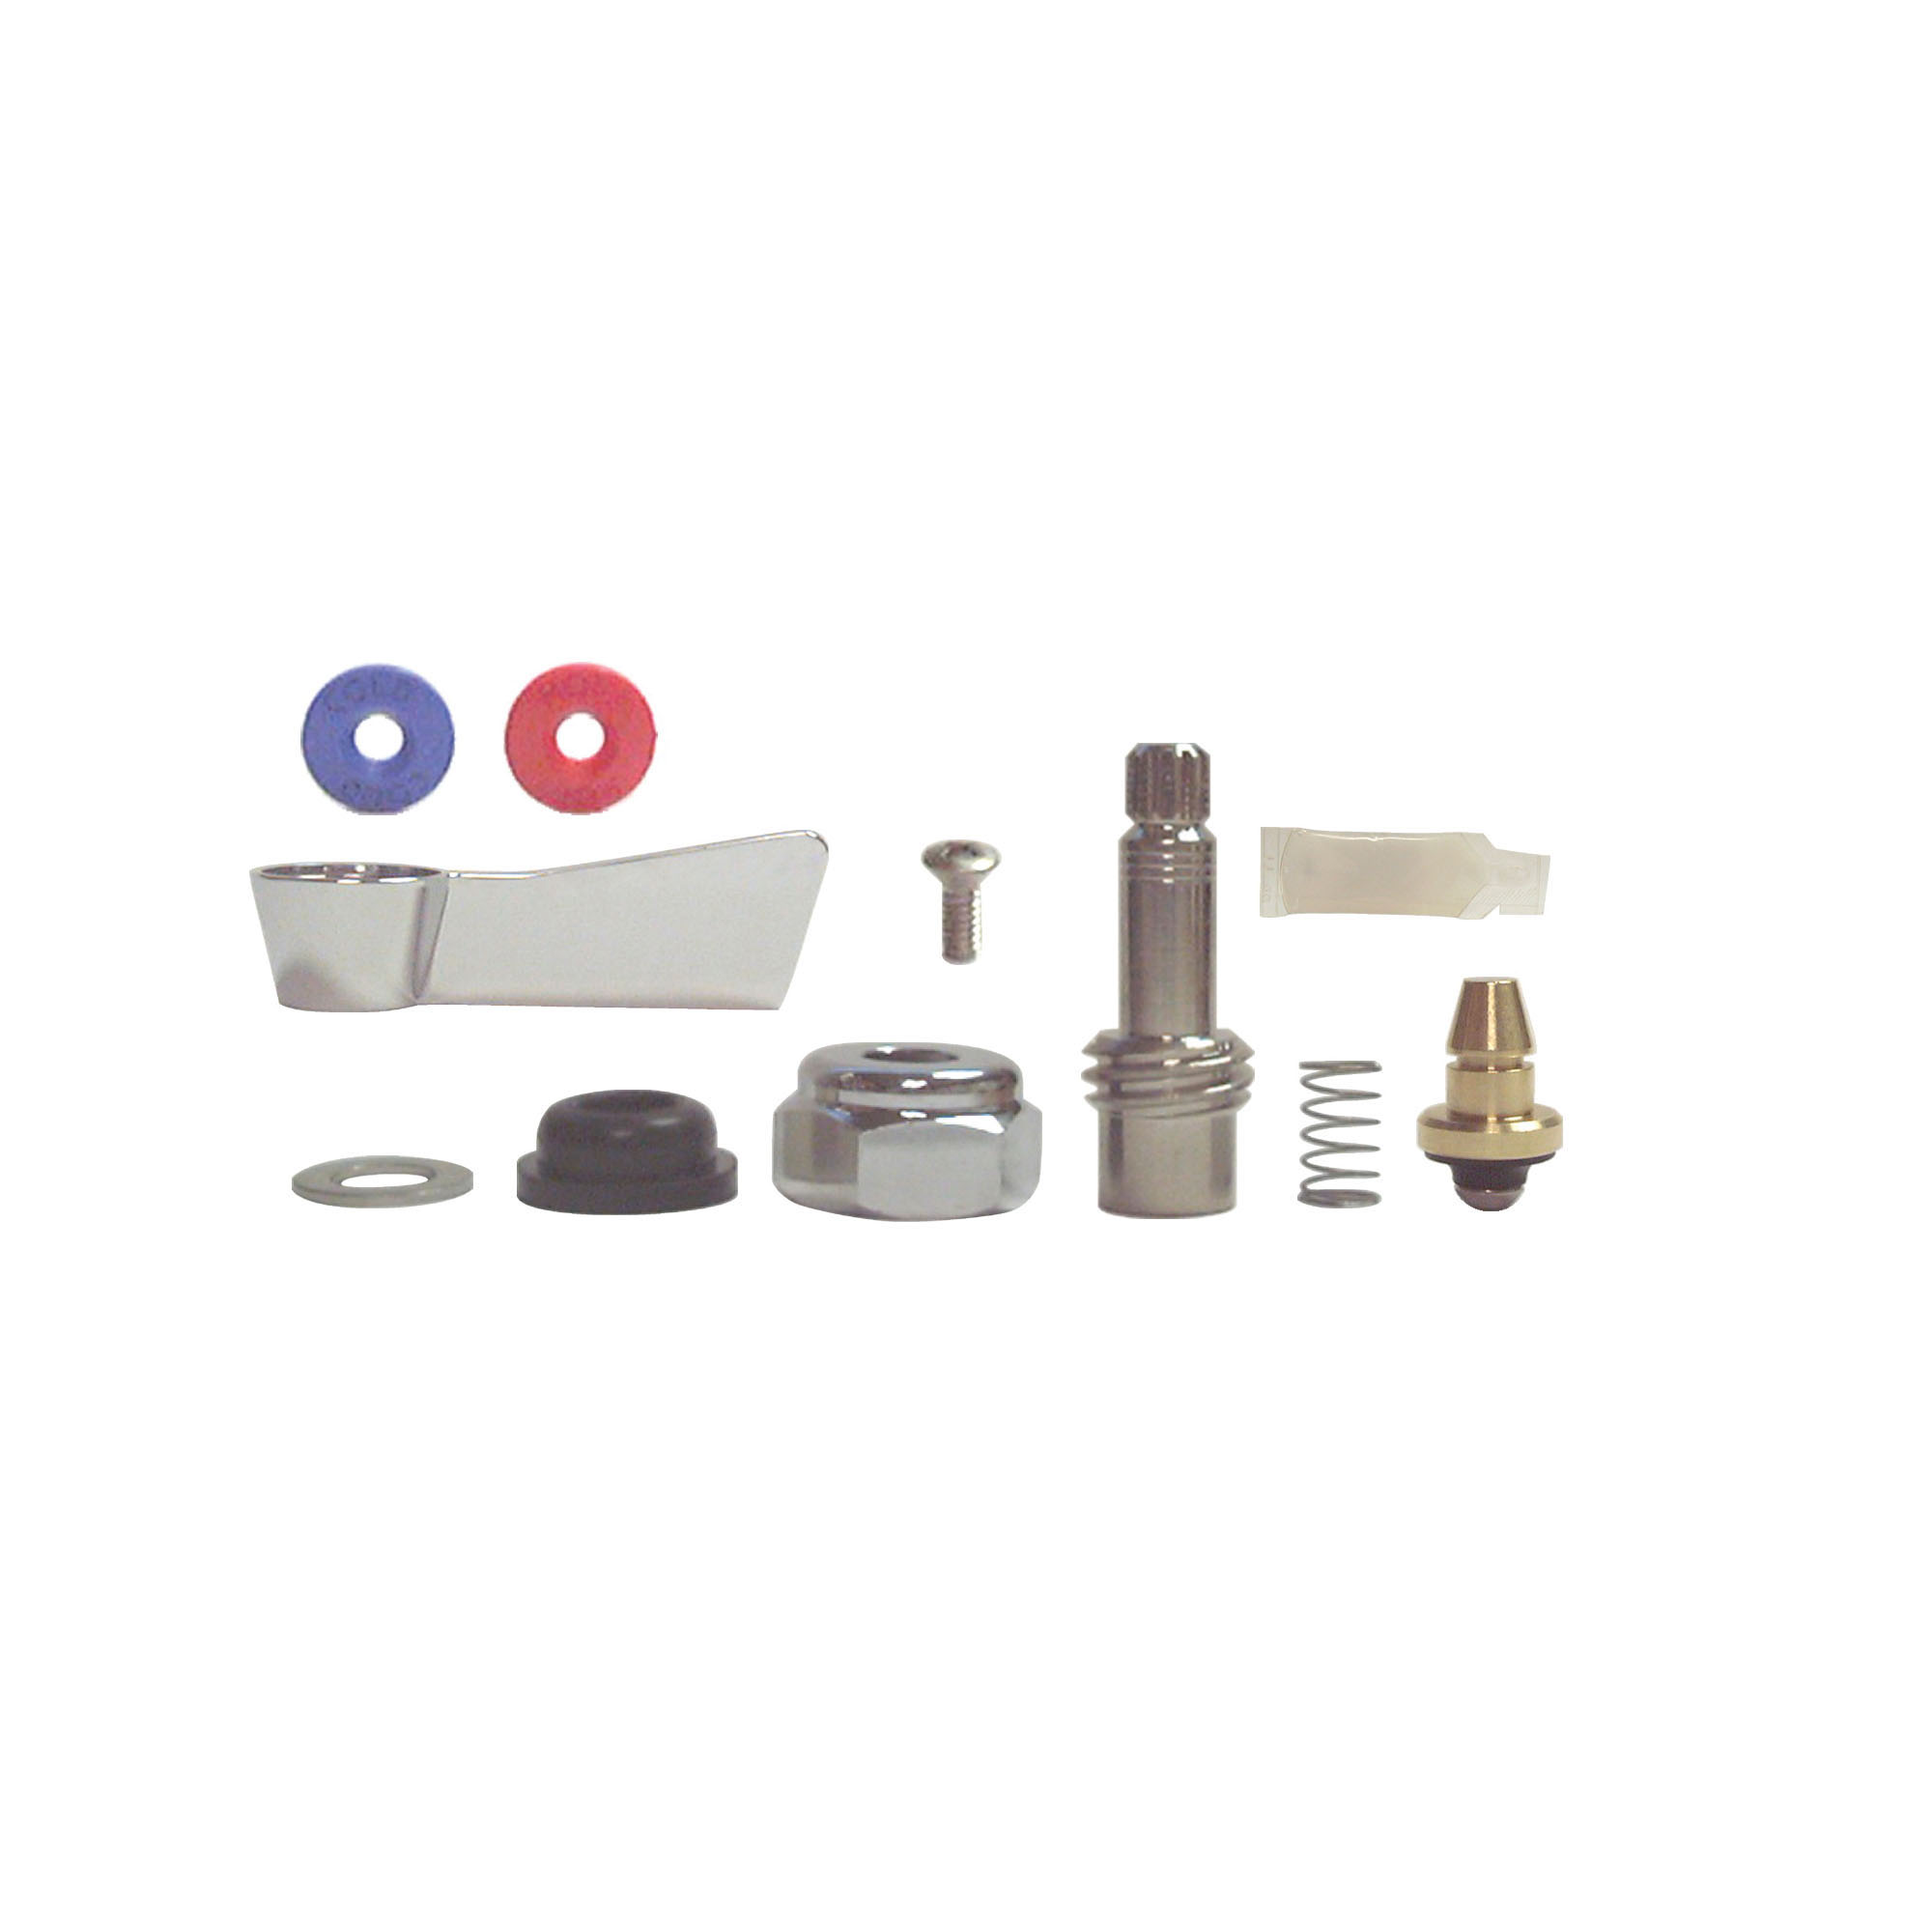 Fisher 3000-0000 Faucet Stem Repair Kit, For Use With Model 64734/64742/64750 8 in Backsplash Kitchen Faucet, Brass, Domestic